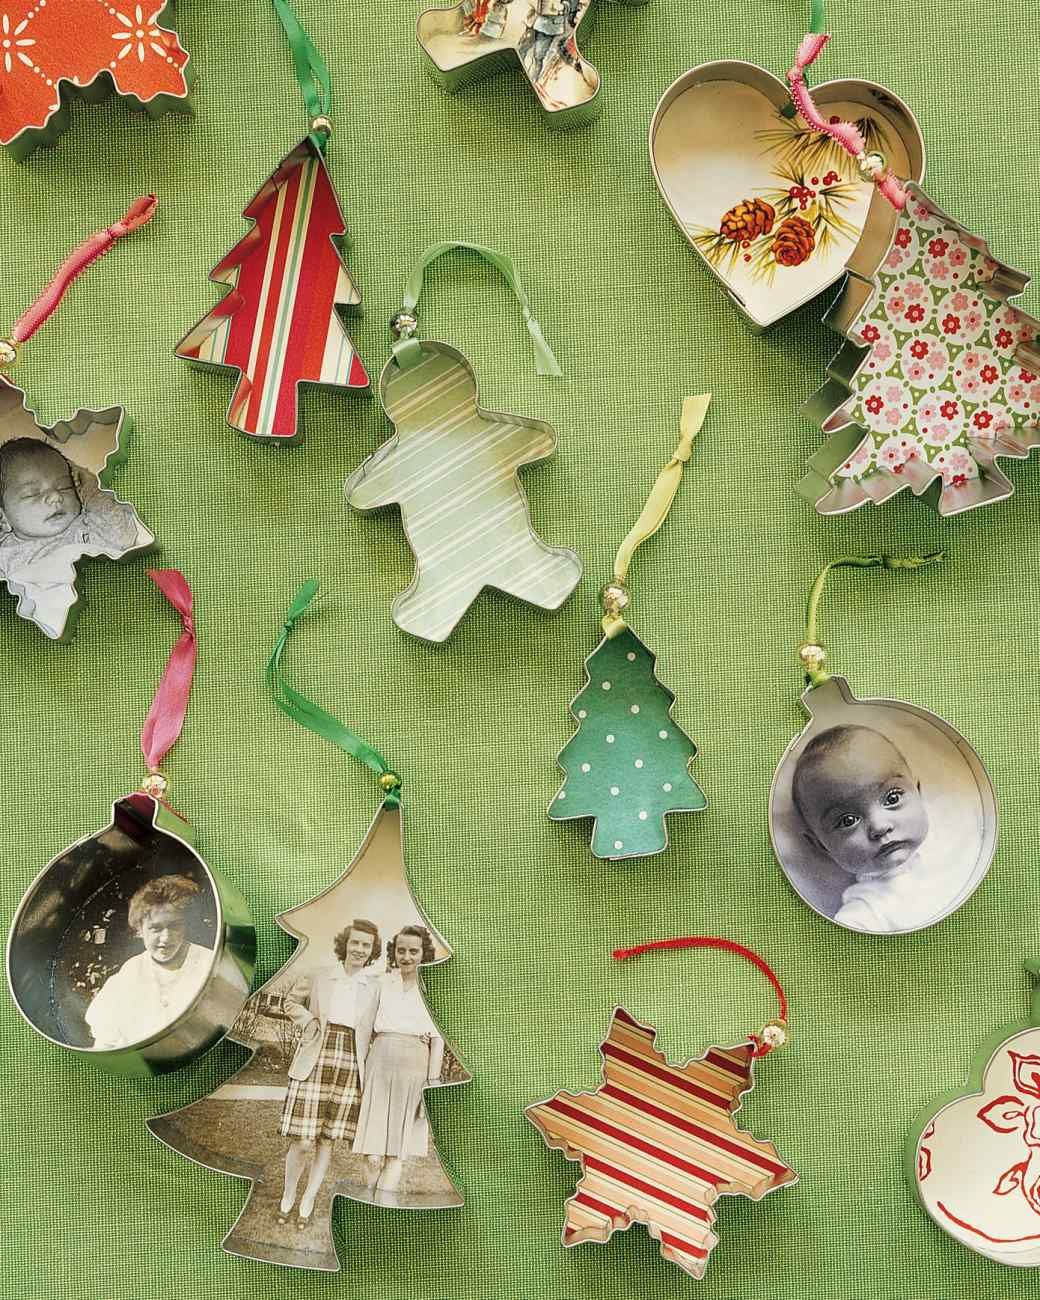 50 wonderful and simple diy christmas tree decorations youll love making